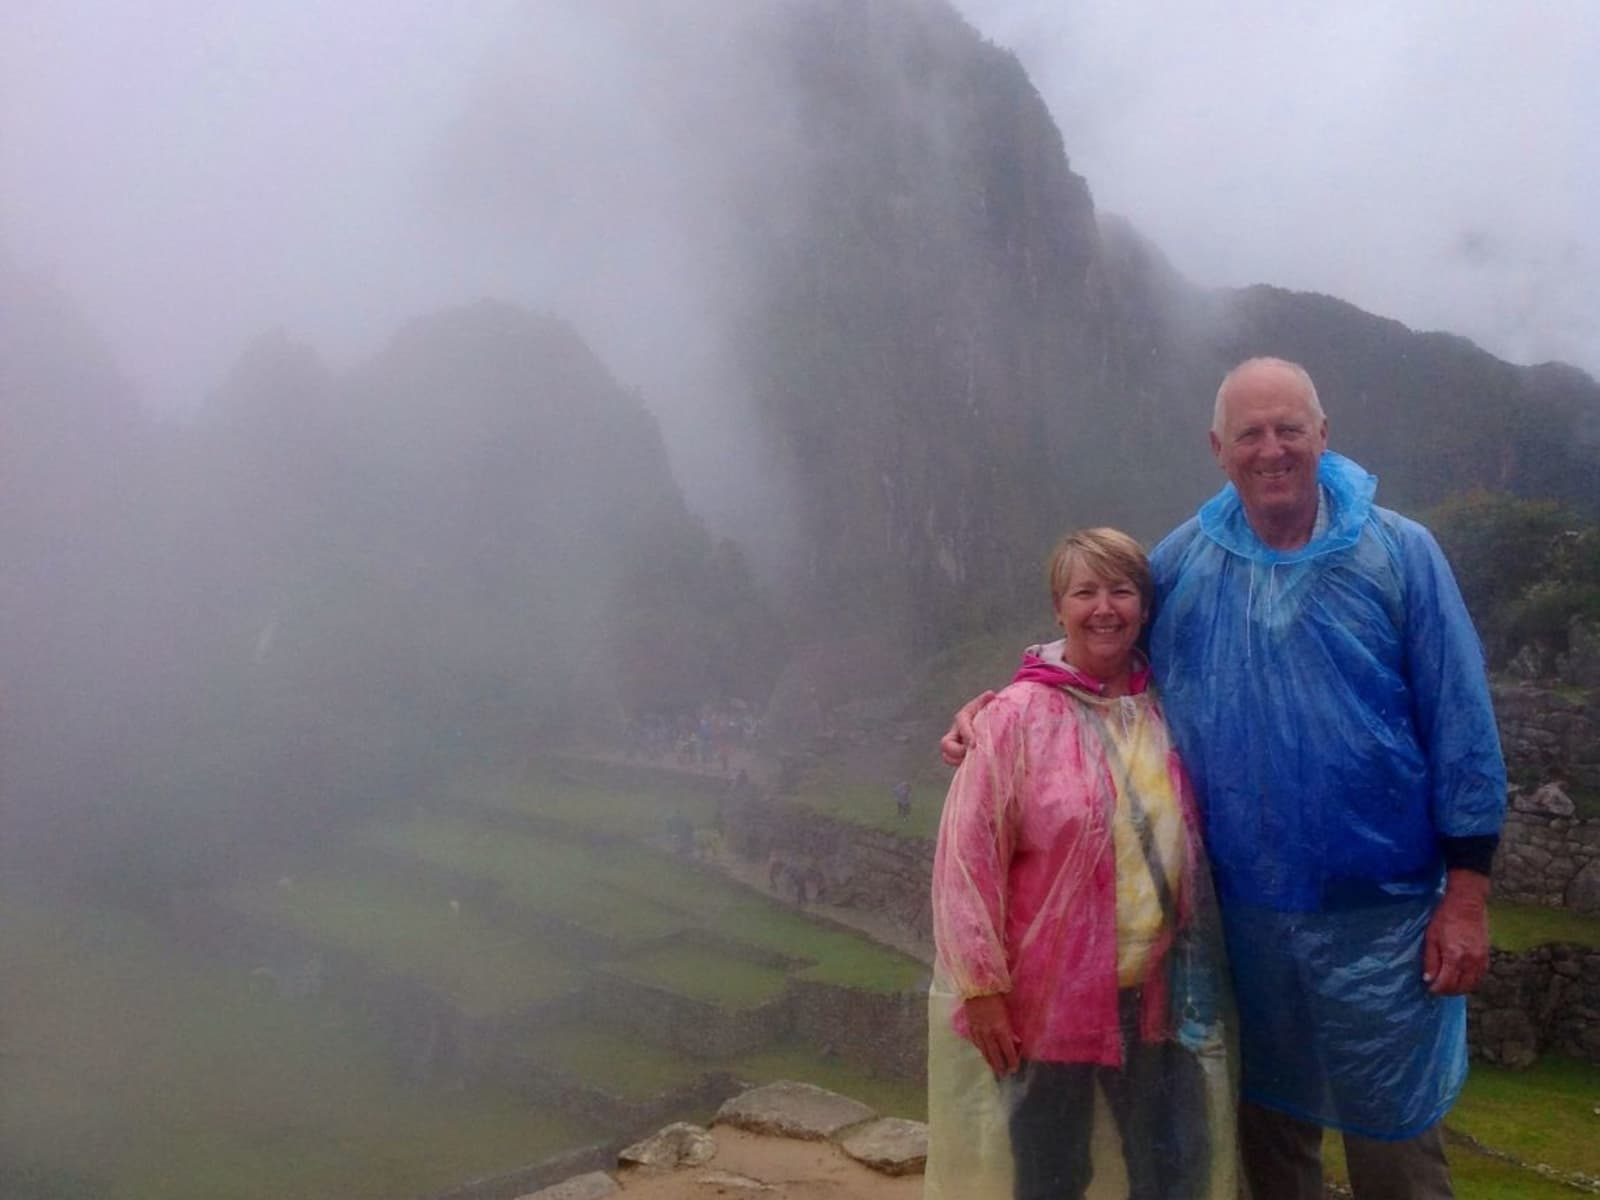 Karen & Rick from Incline Village, Nevada, United States